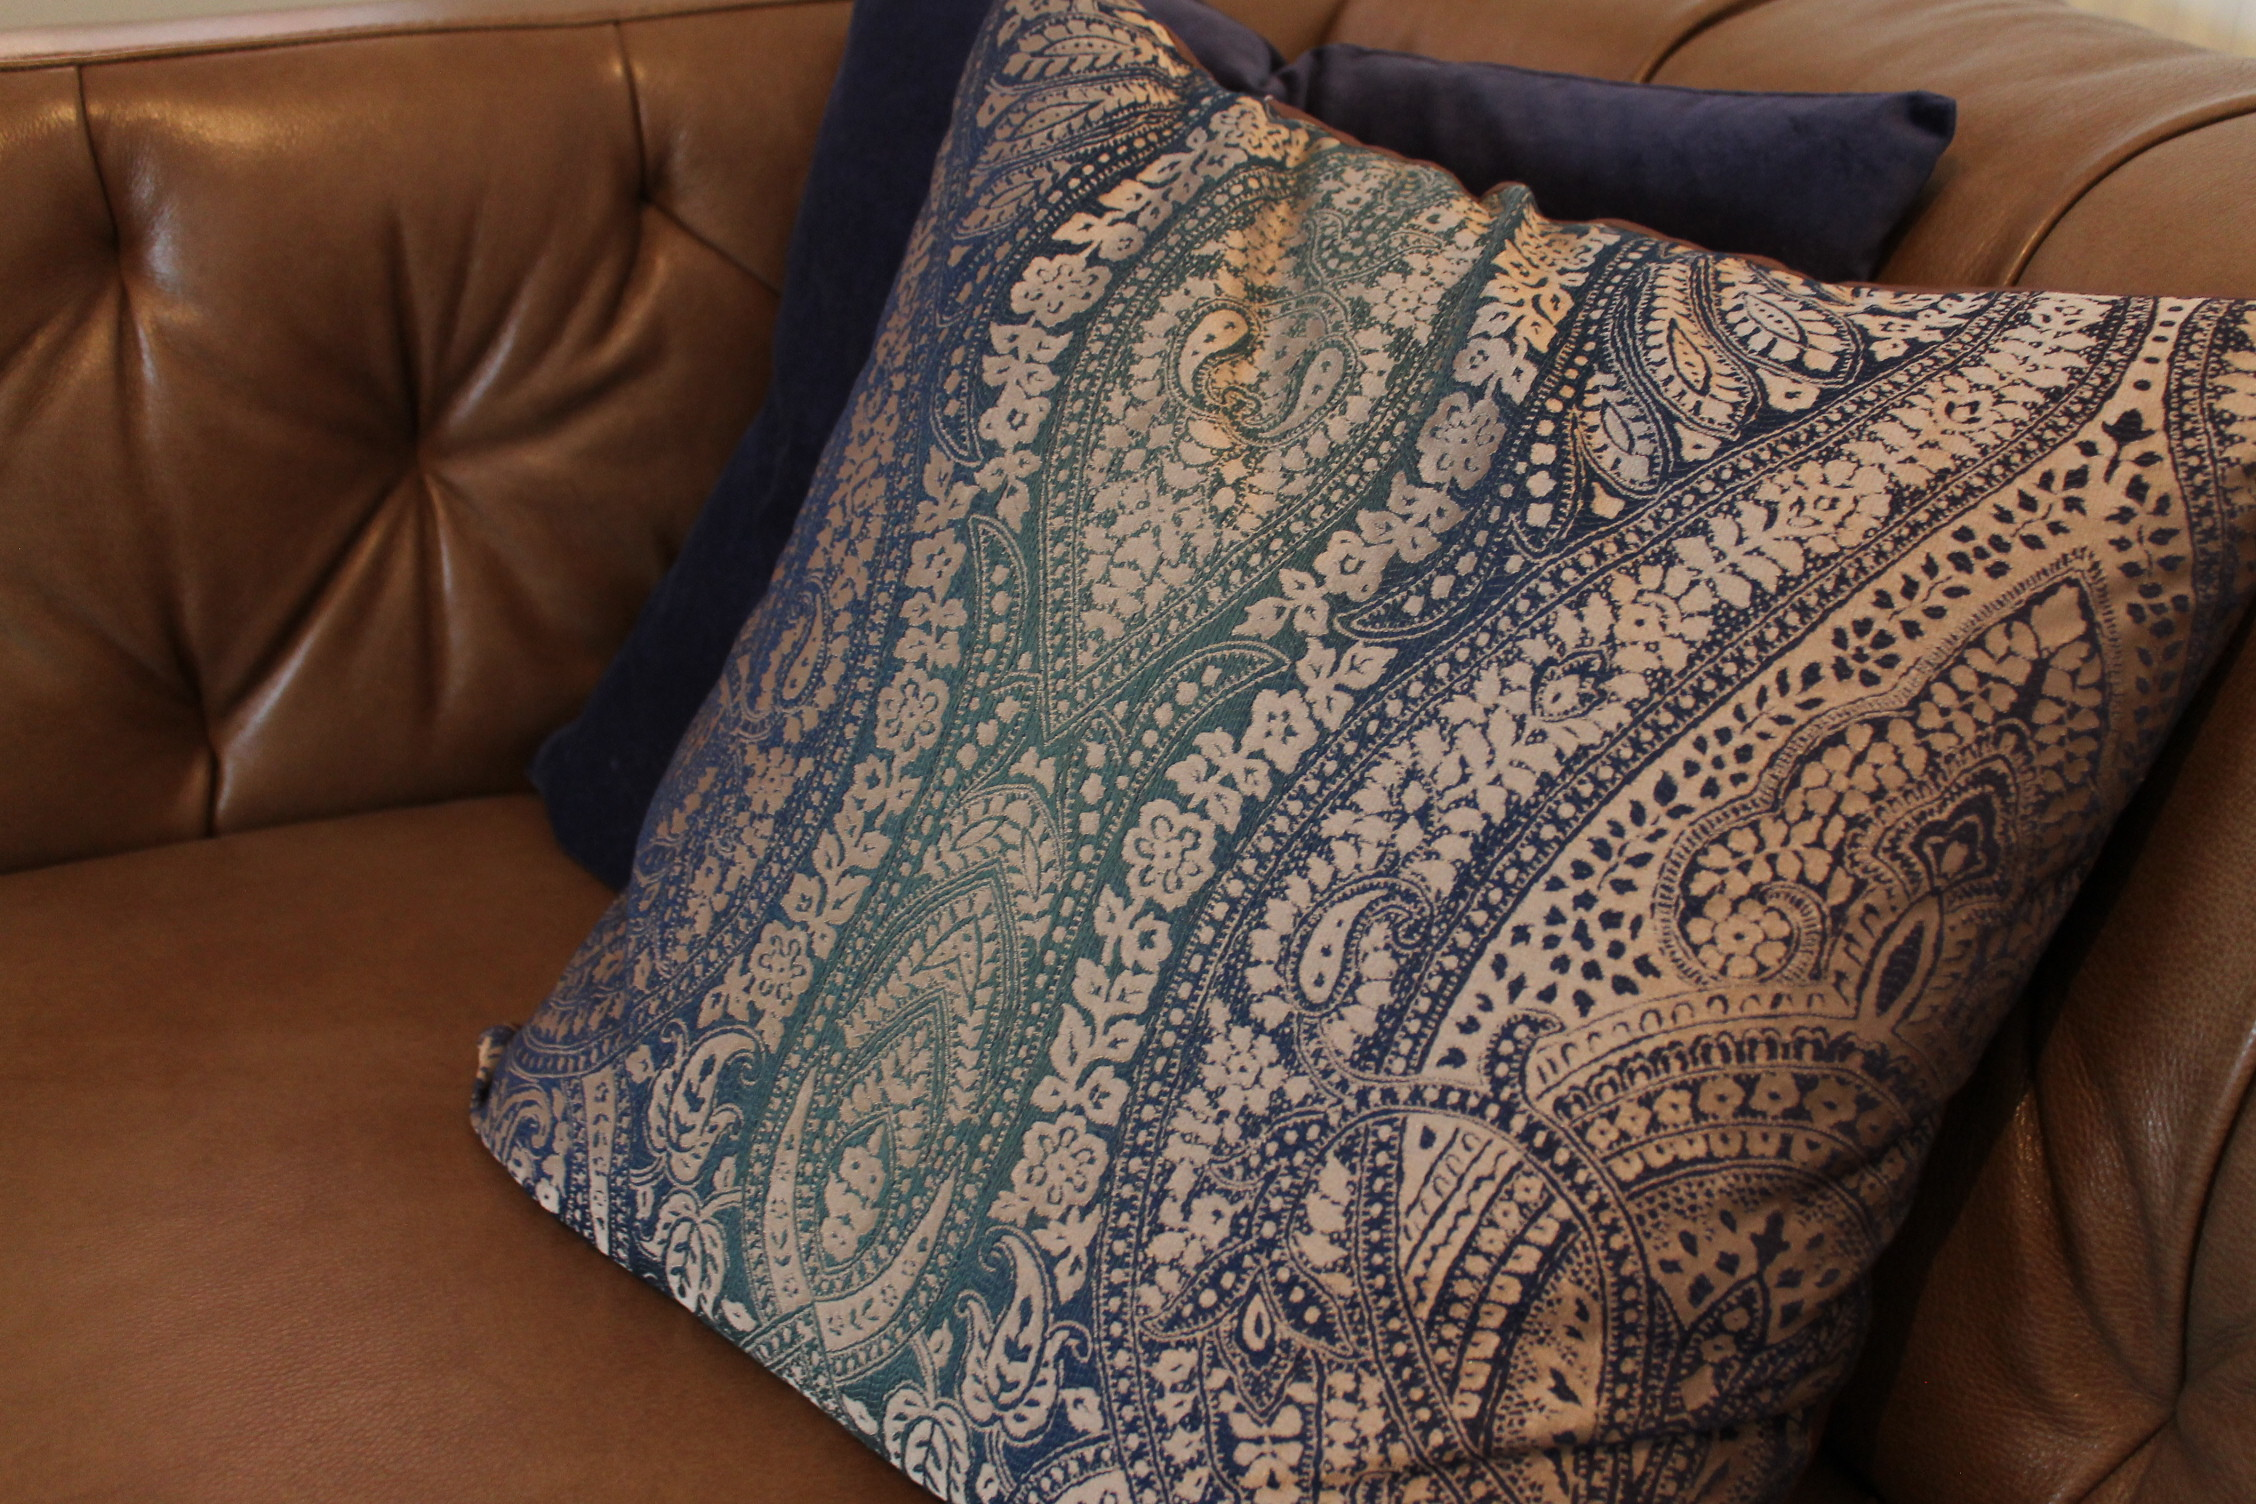 """""""Patterned and plain cushions in blue tones on top of a tan leather sofa"""""""